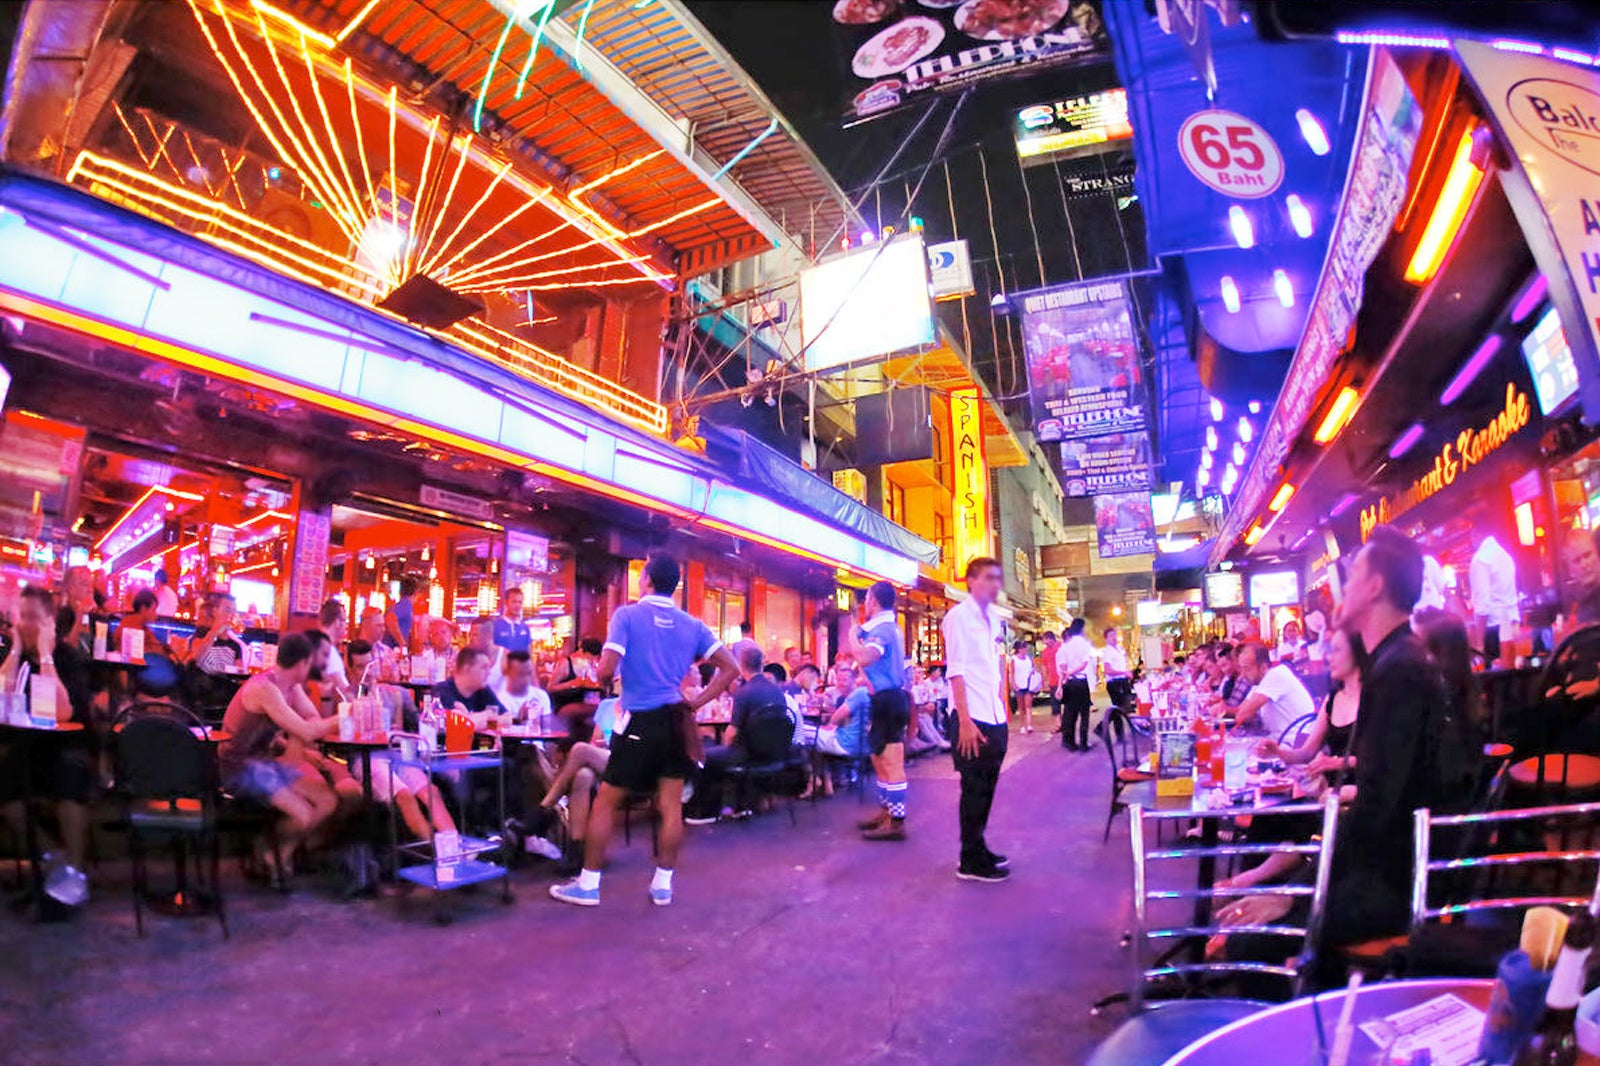 Nightlife in bangkok for singles